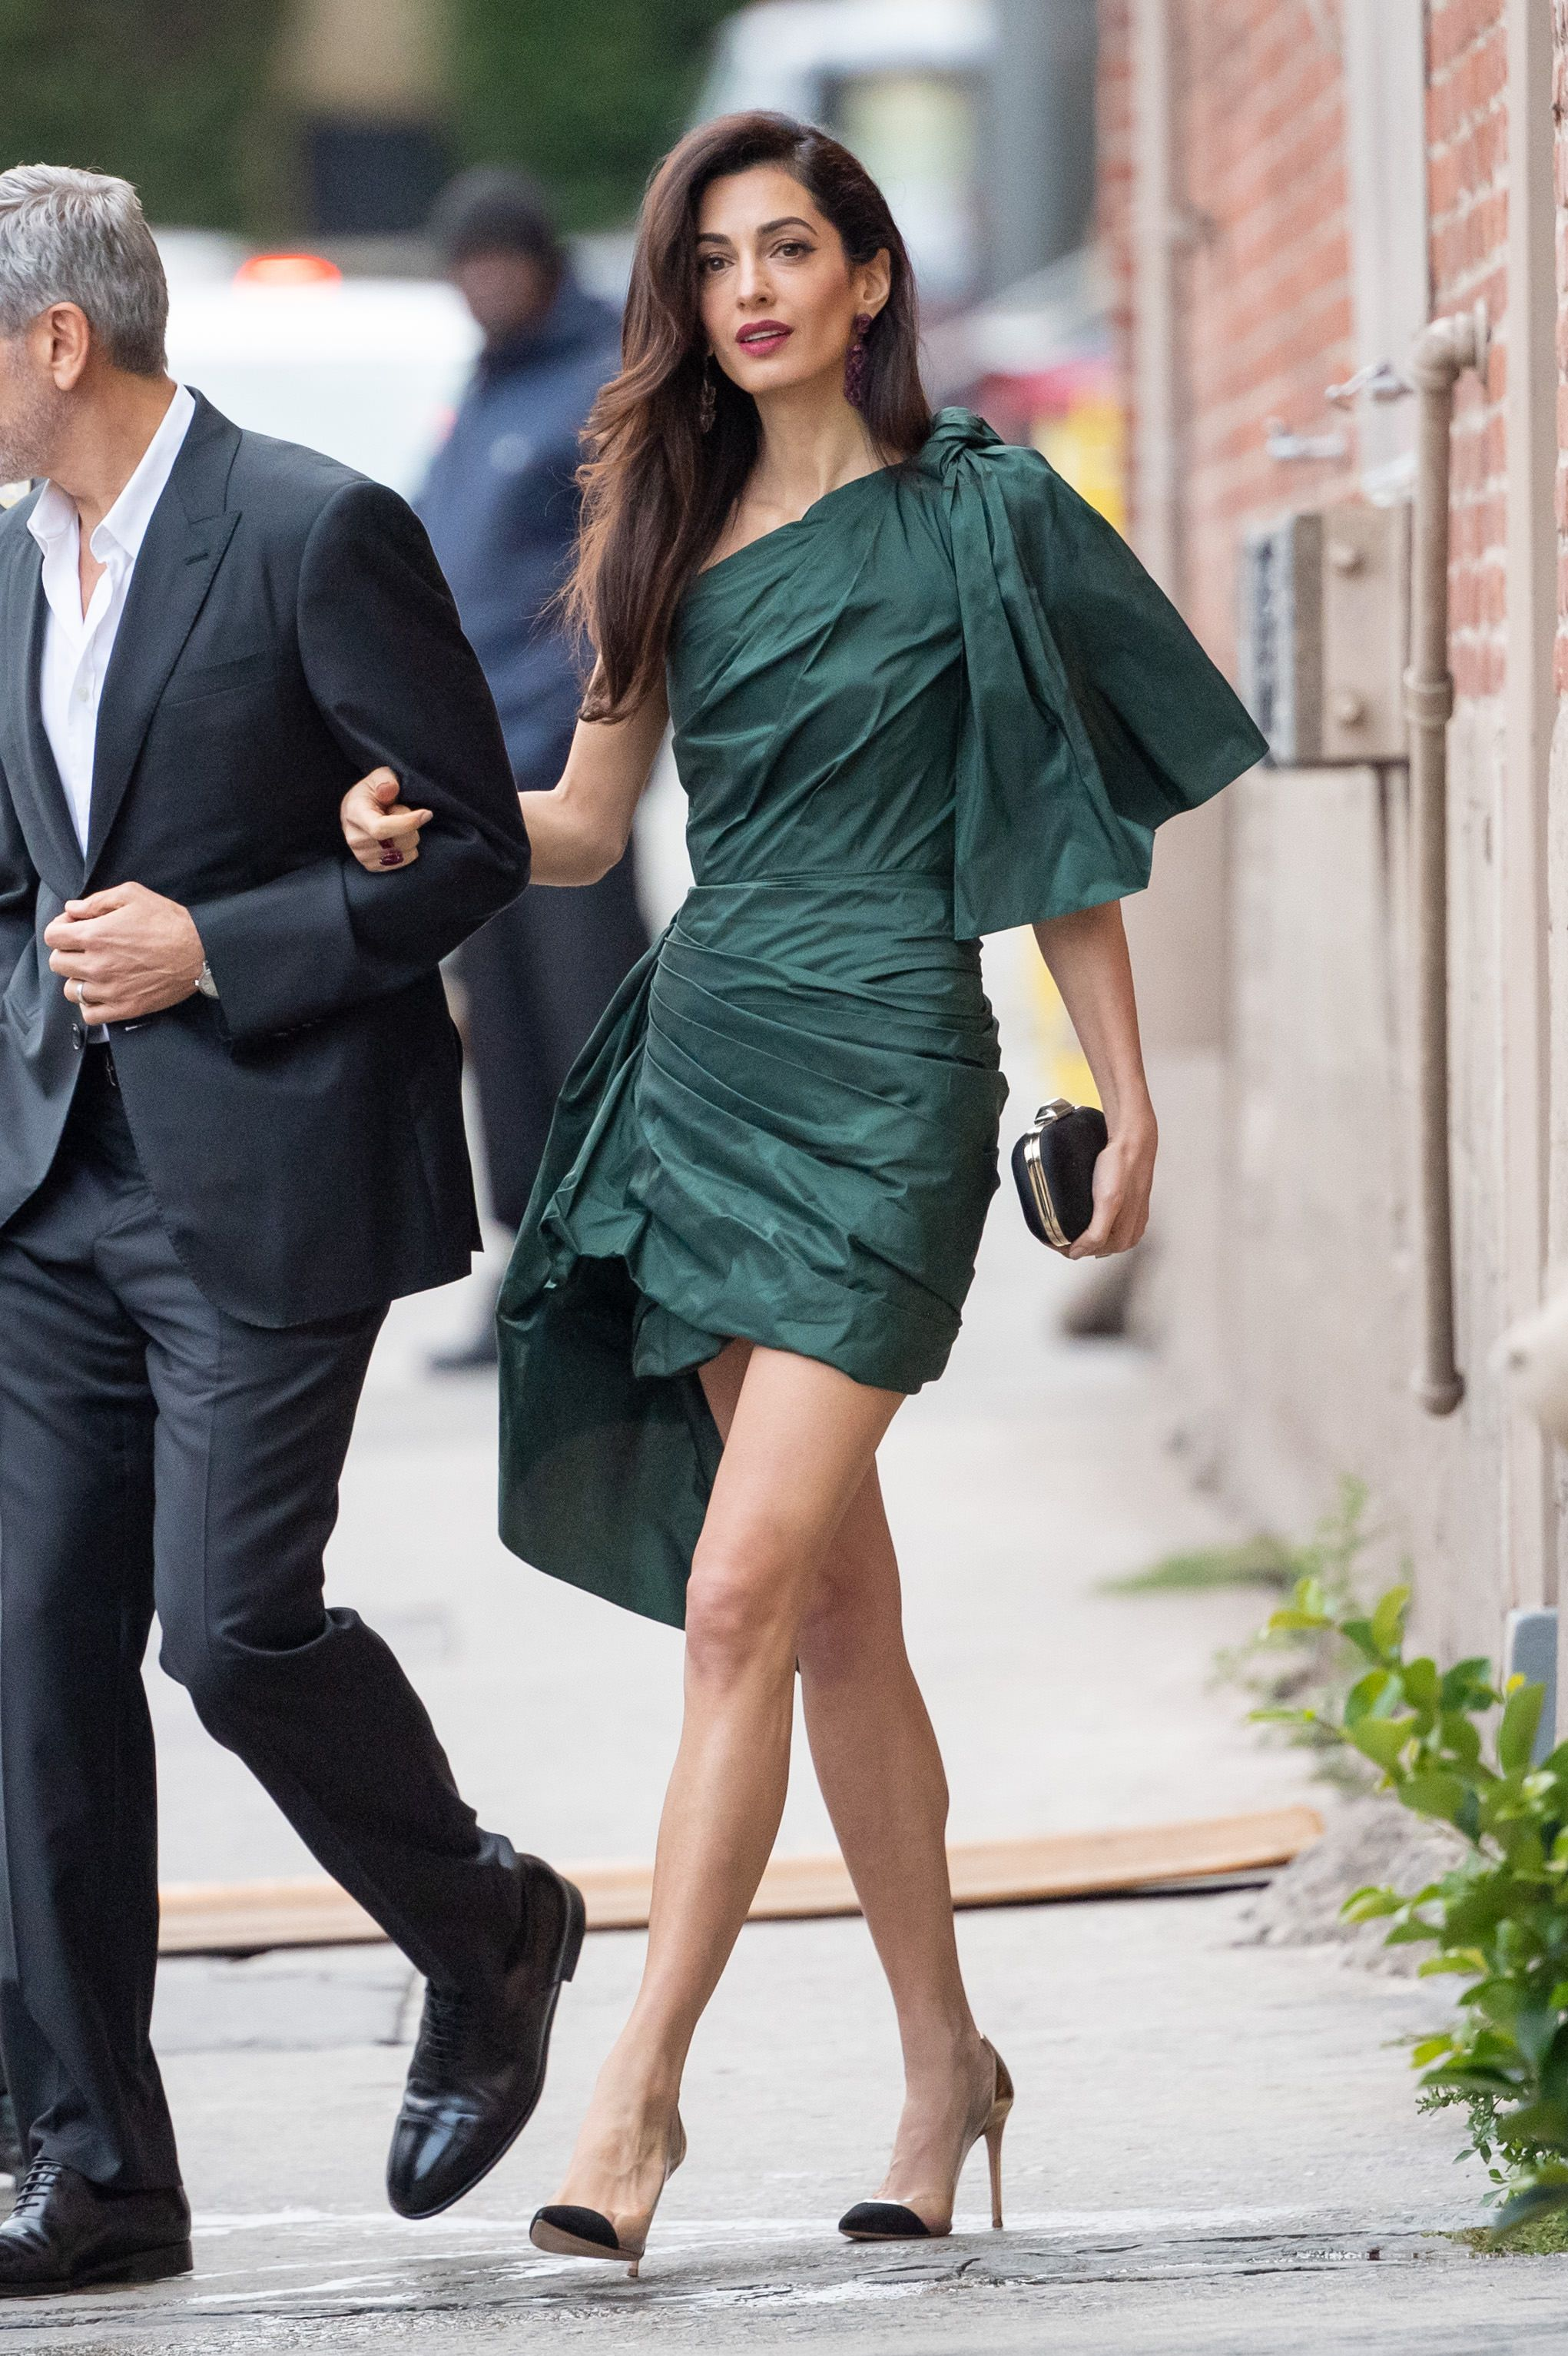 May 07, 2019 The star accompanied husband George to his new Hulu series Catch-22 at the TCL Chinese Theatre in Hollywood. For the red carpet moment, Amal wore an Oscar de la Renta one-shoulder green dress, which had a strong shoulder and reminded us of these Met Gala looks .